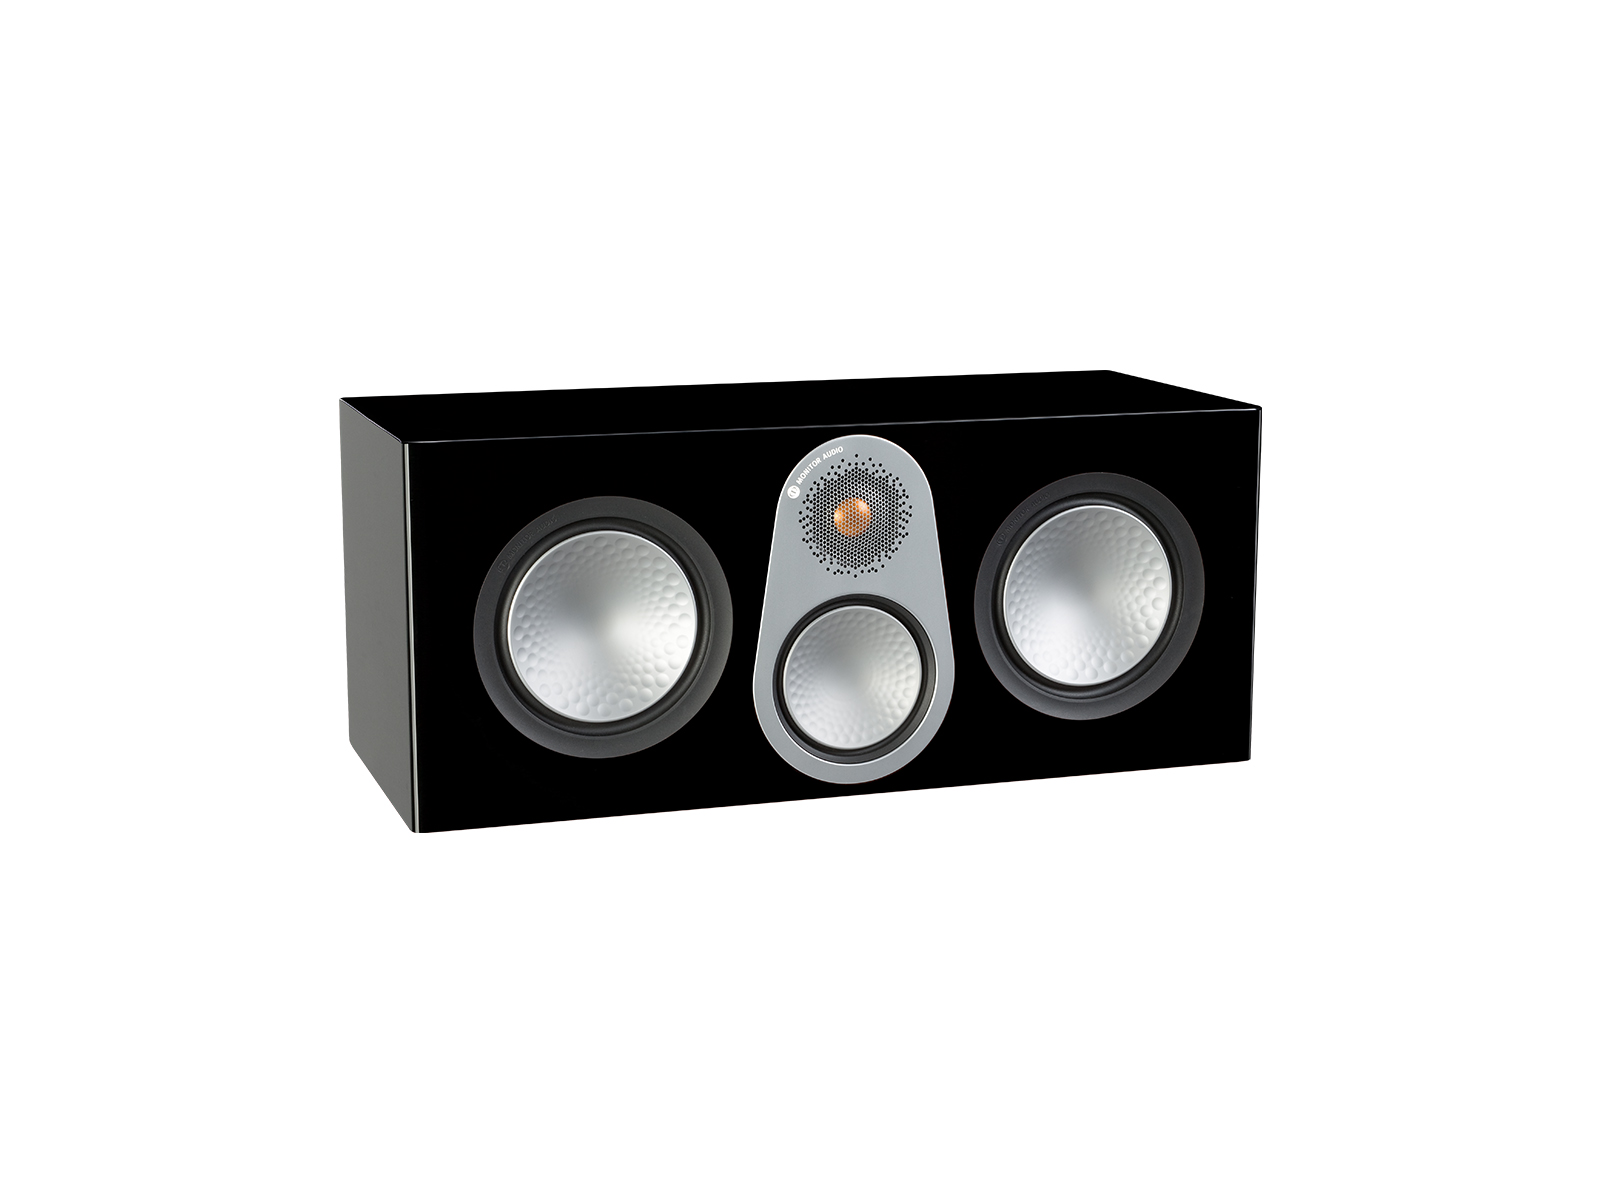 Silver C350, grille-less centre channel speakers, with a high gloss black finish.